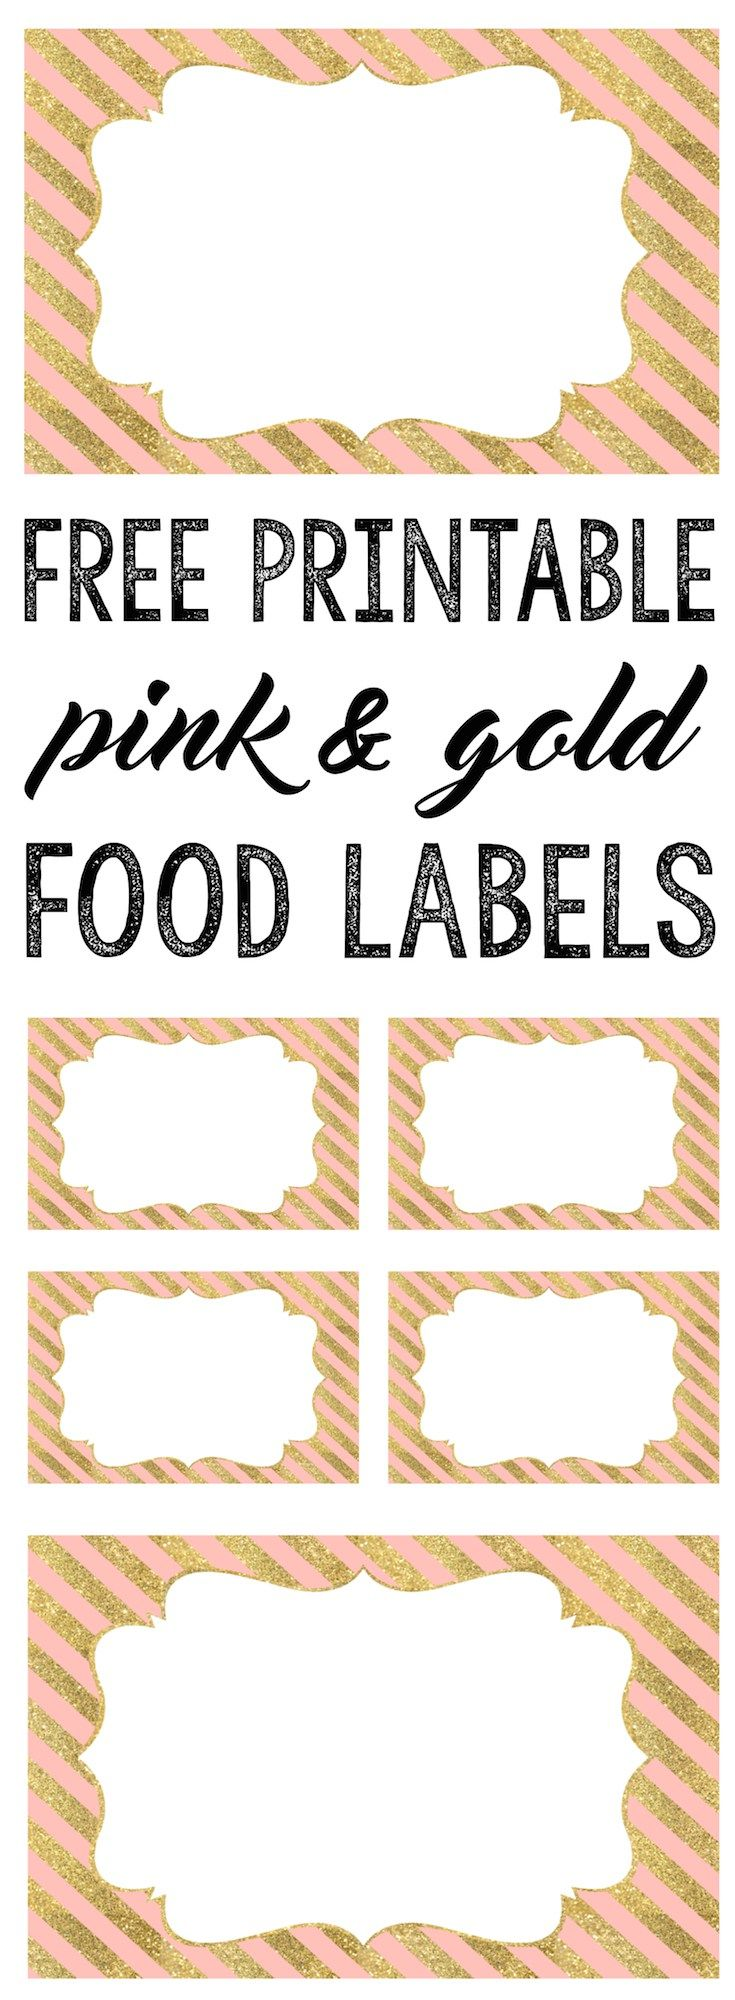 Pink and Gold Food Labels free printable. Print these food labels for your pink and gold baby shower, birthday party, bridal shower or whatever even you choose.